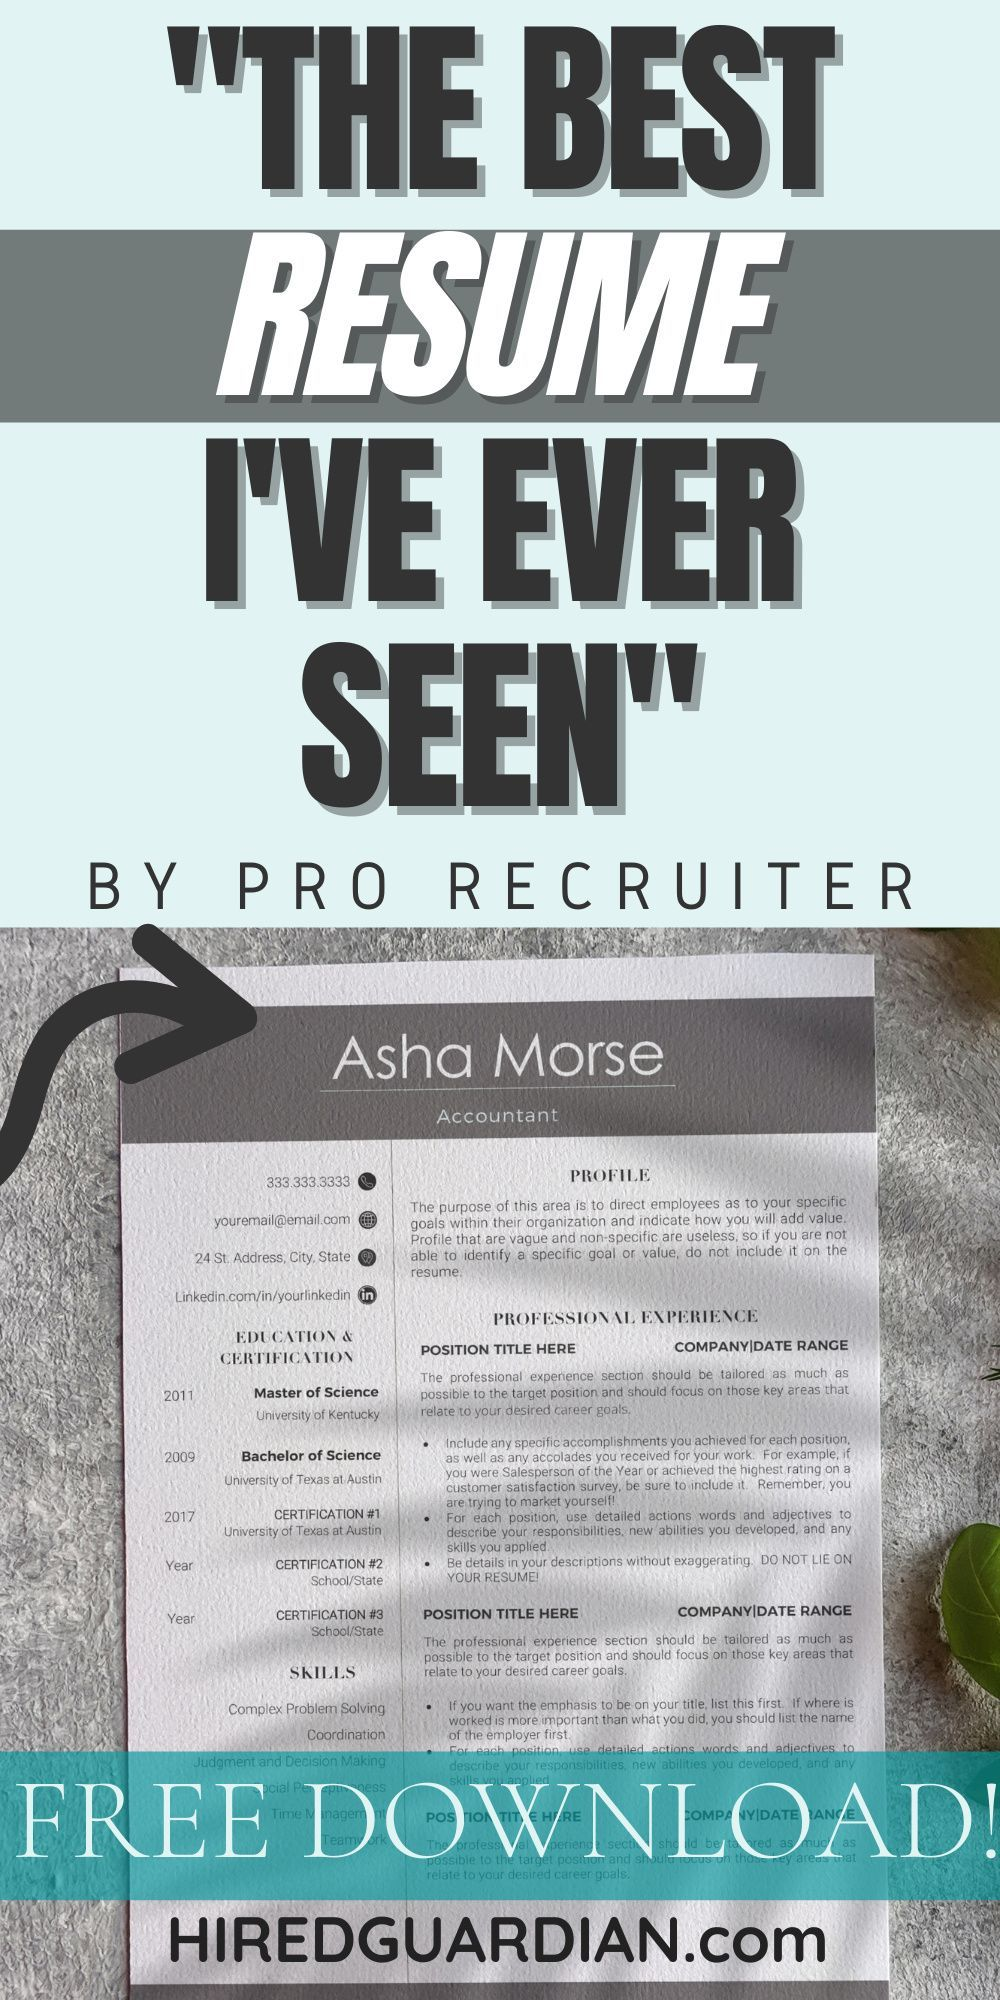 ready to evolve your resume minimalist template professional examples the step modern Resume The 24 Step Modern Resume